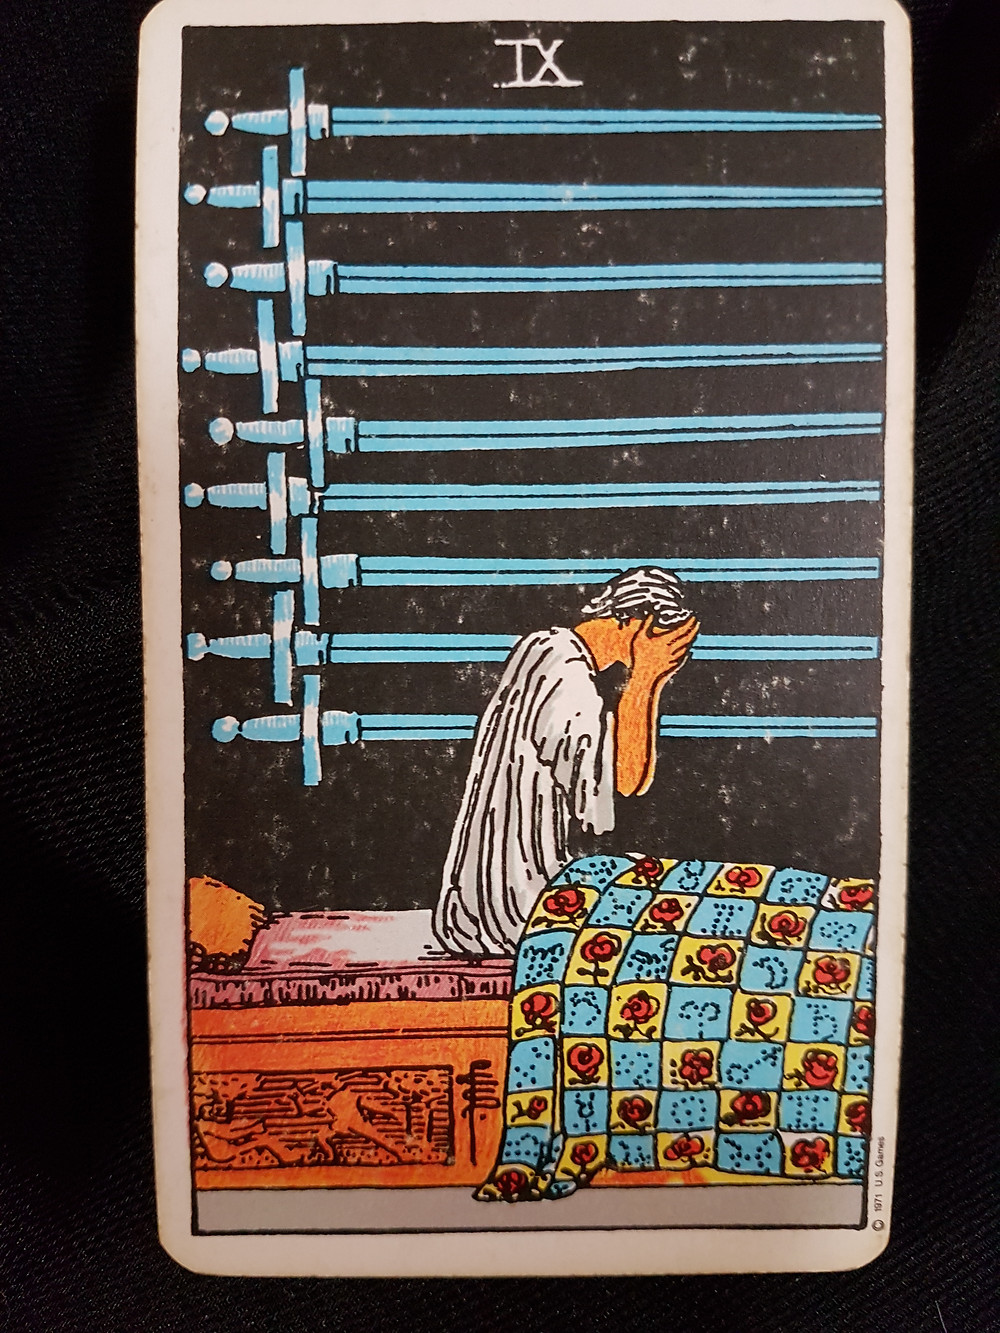 9 of Swords lynsreadings.com